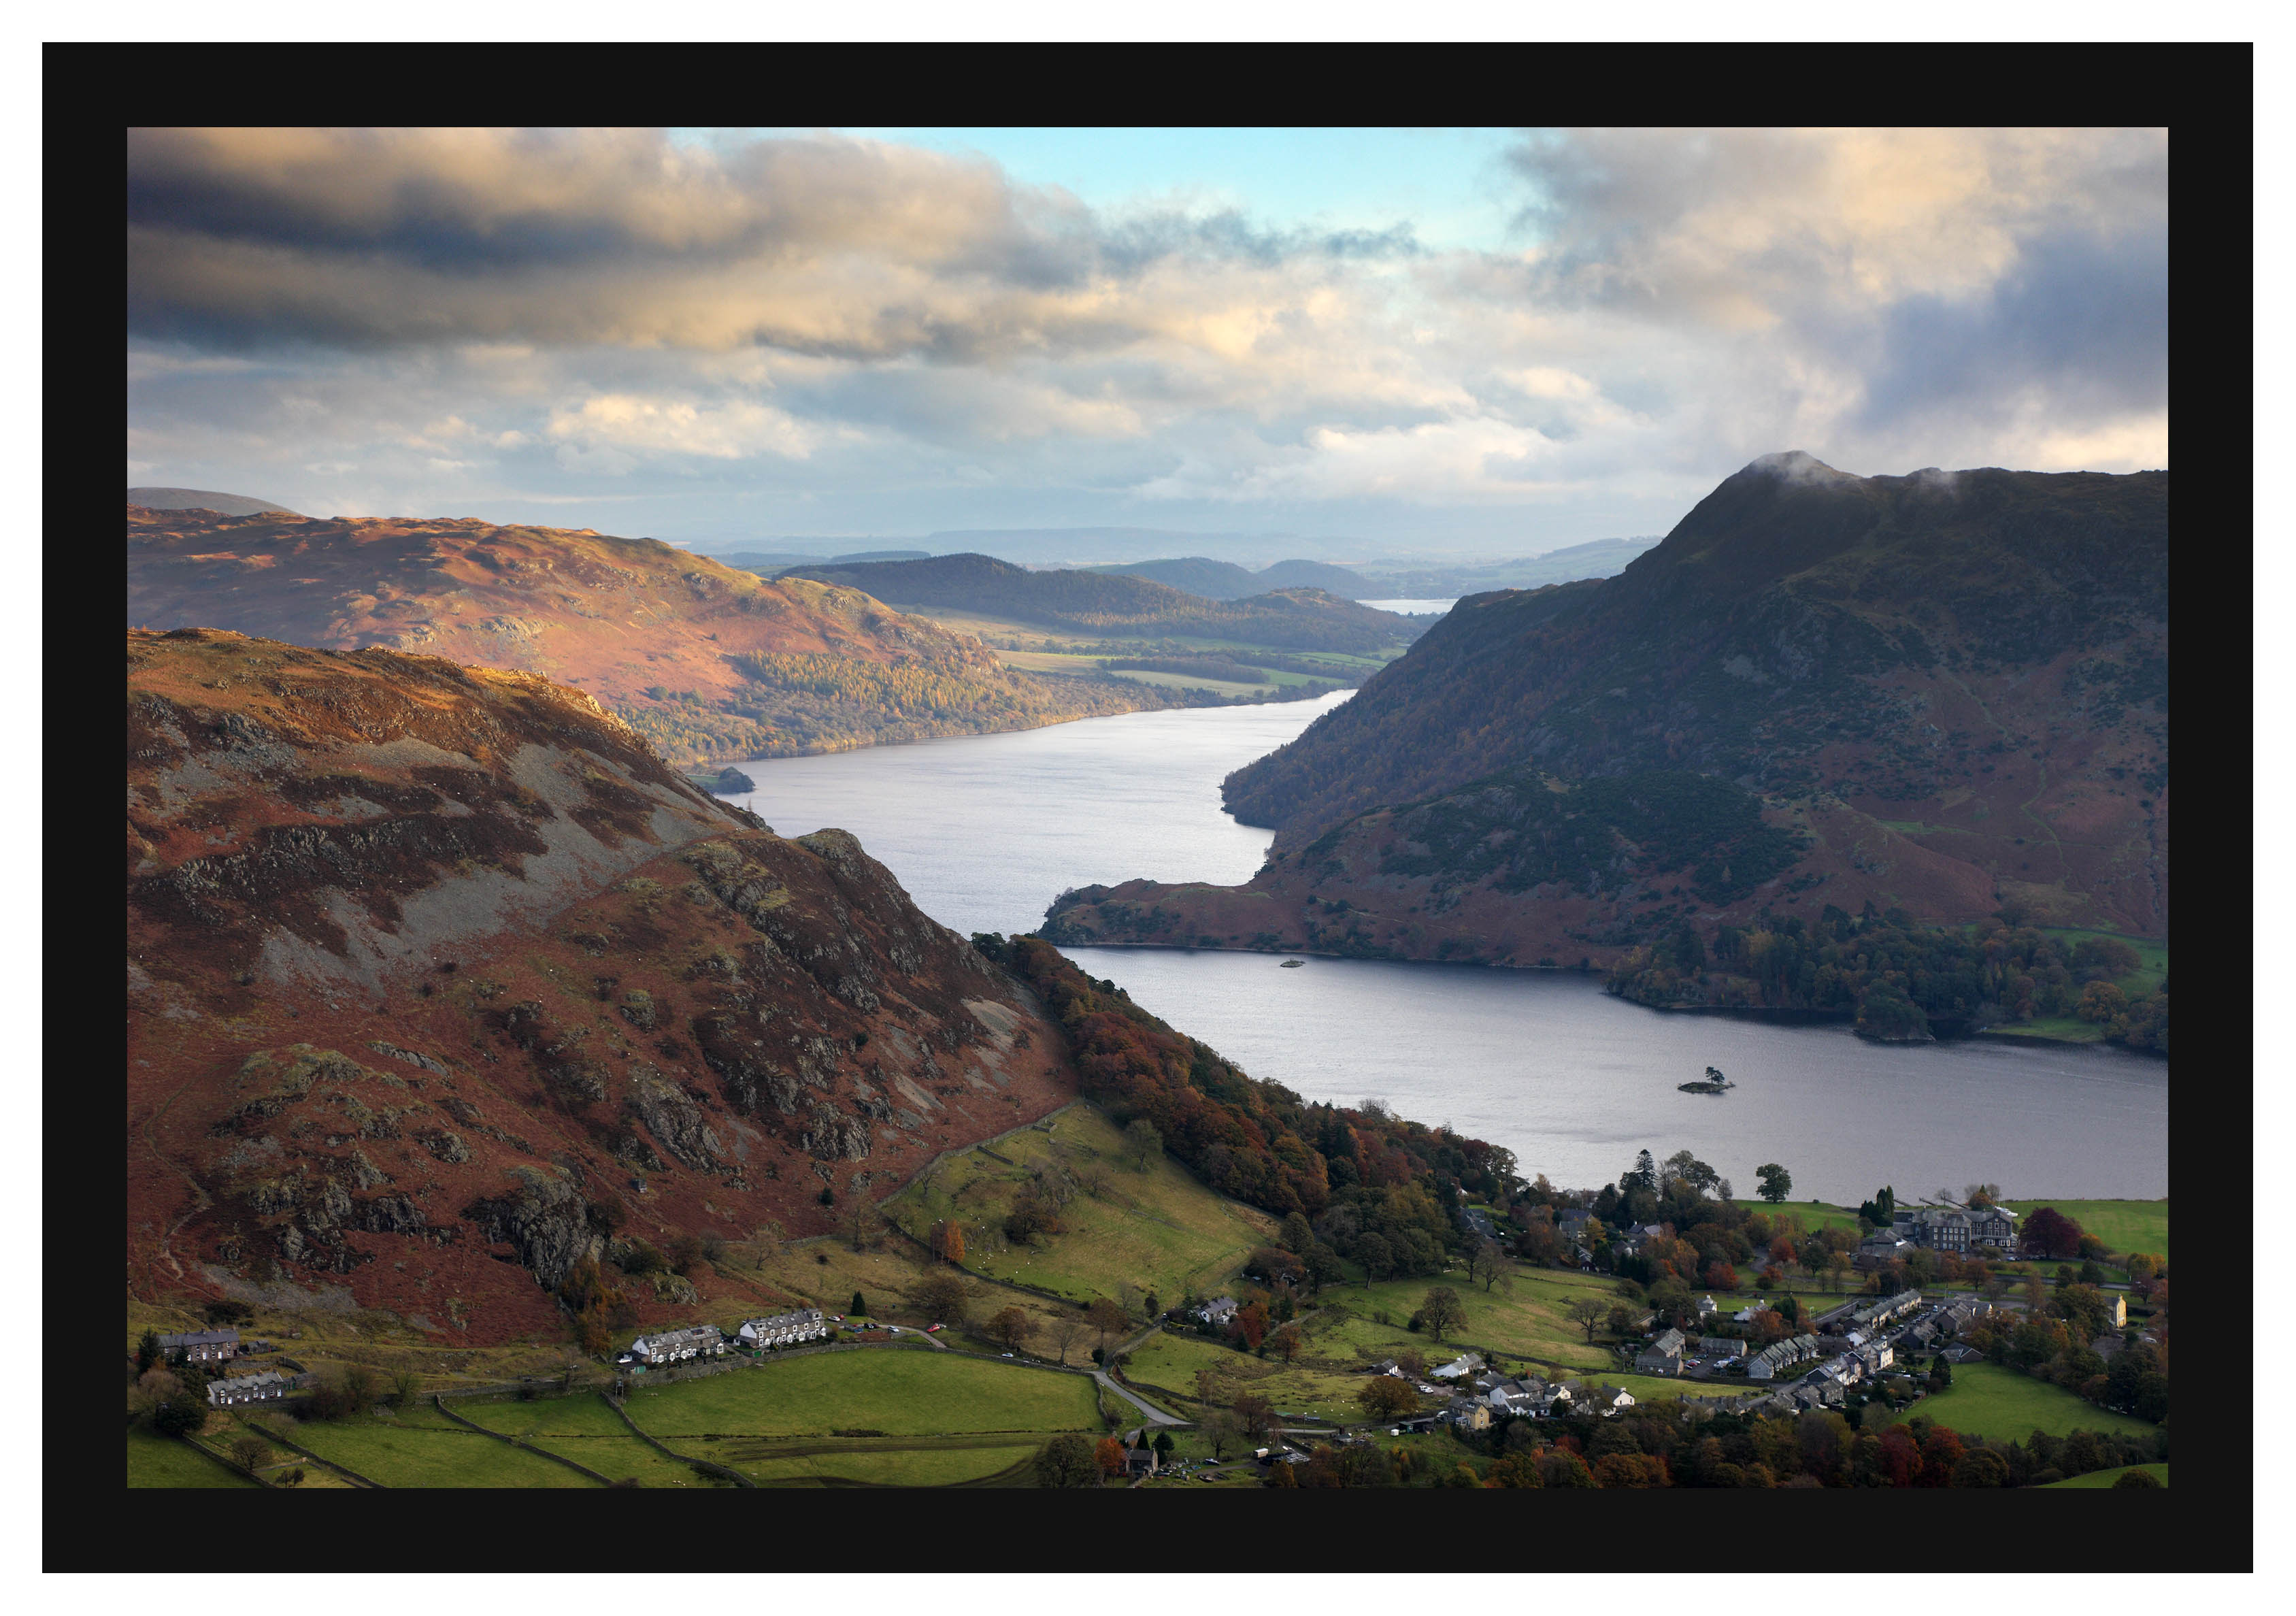 46E7611 Glenridding and Ullswater from Birkhouse Moor